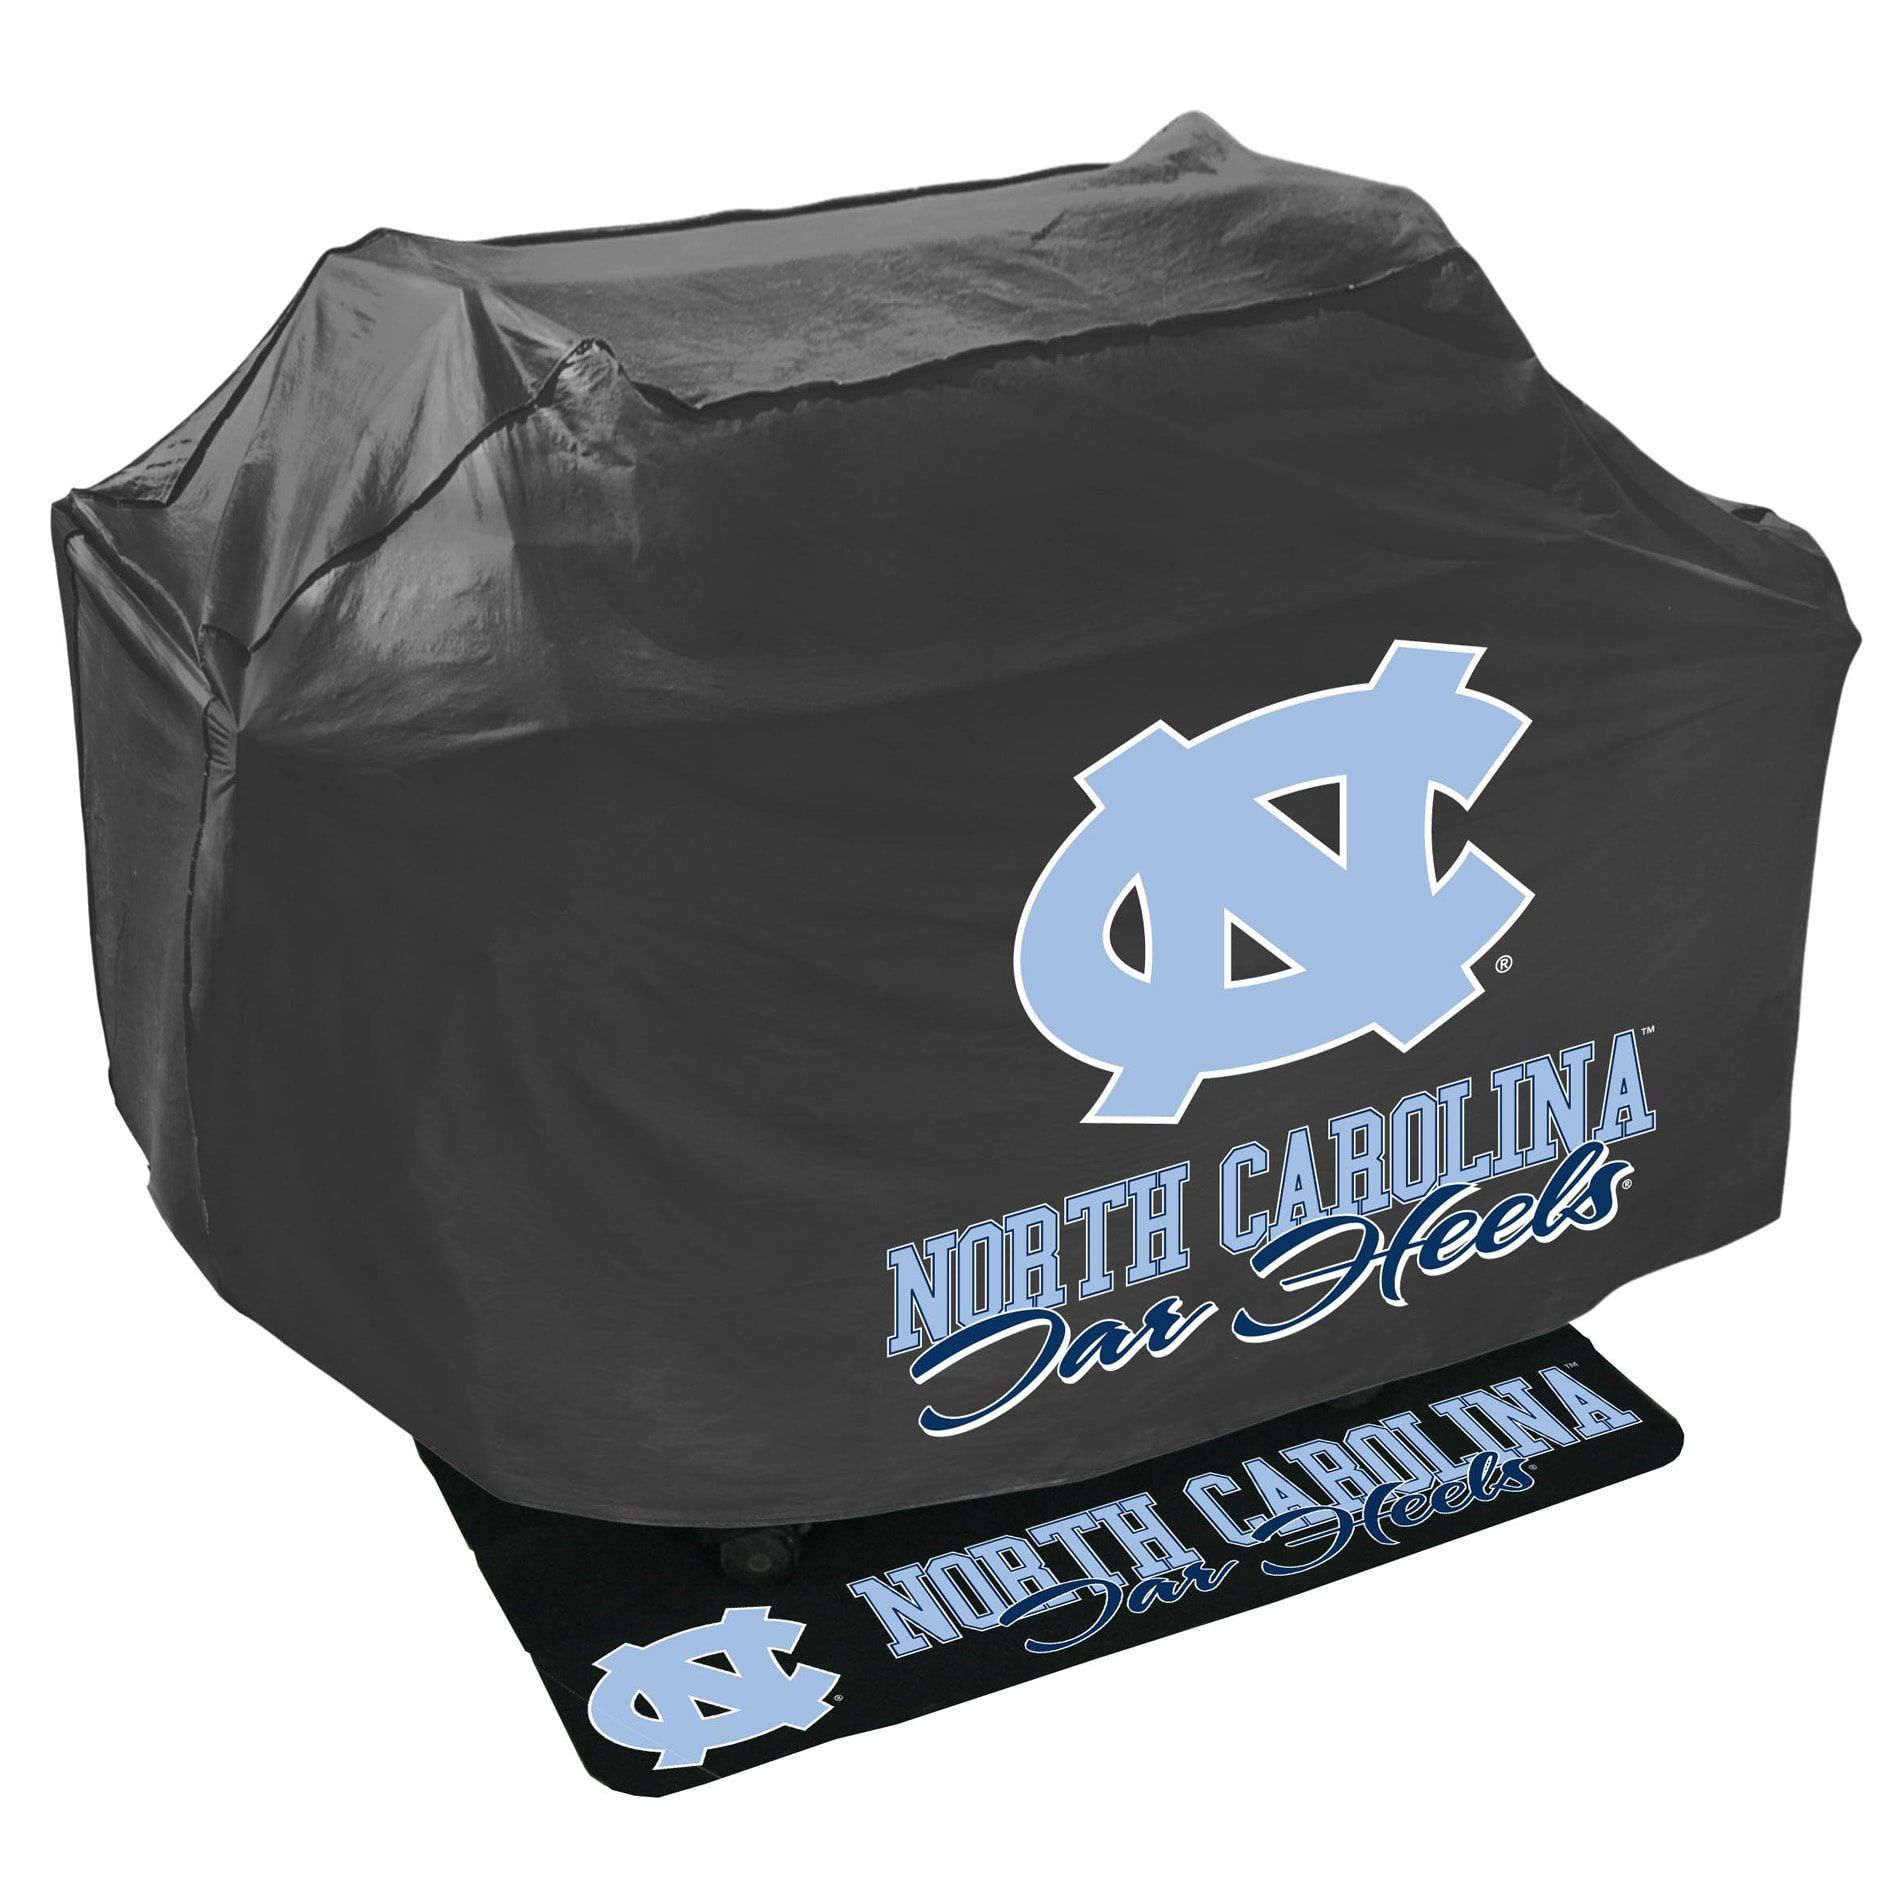 Mr BBQ North Carolina Tar Heels Grill Cover and Mat Set by Mr Bar